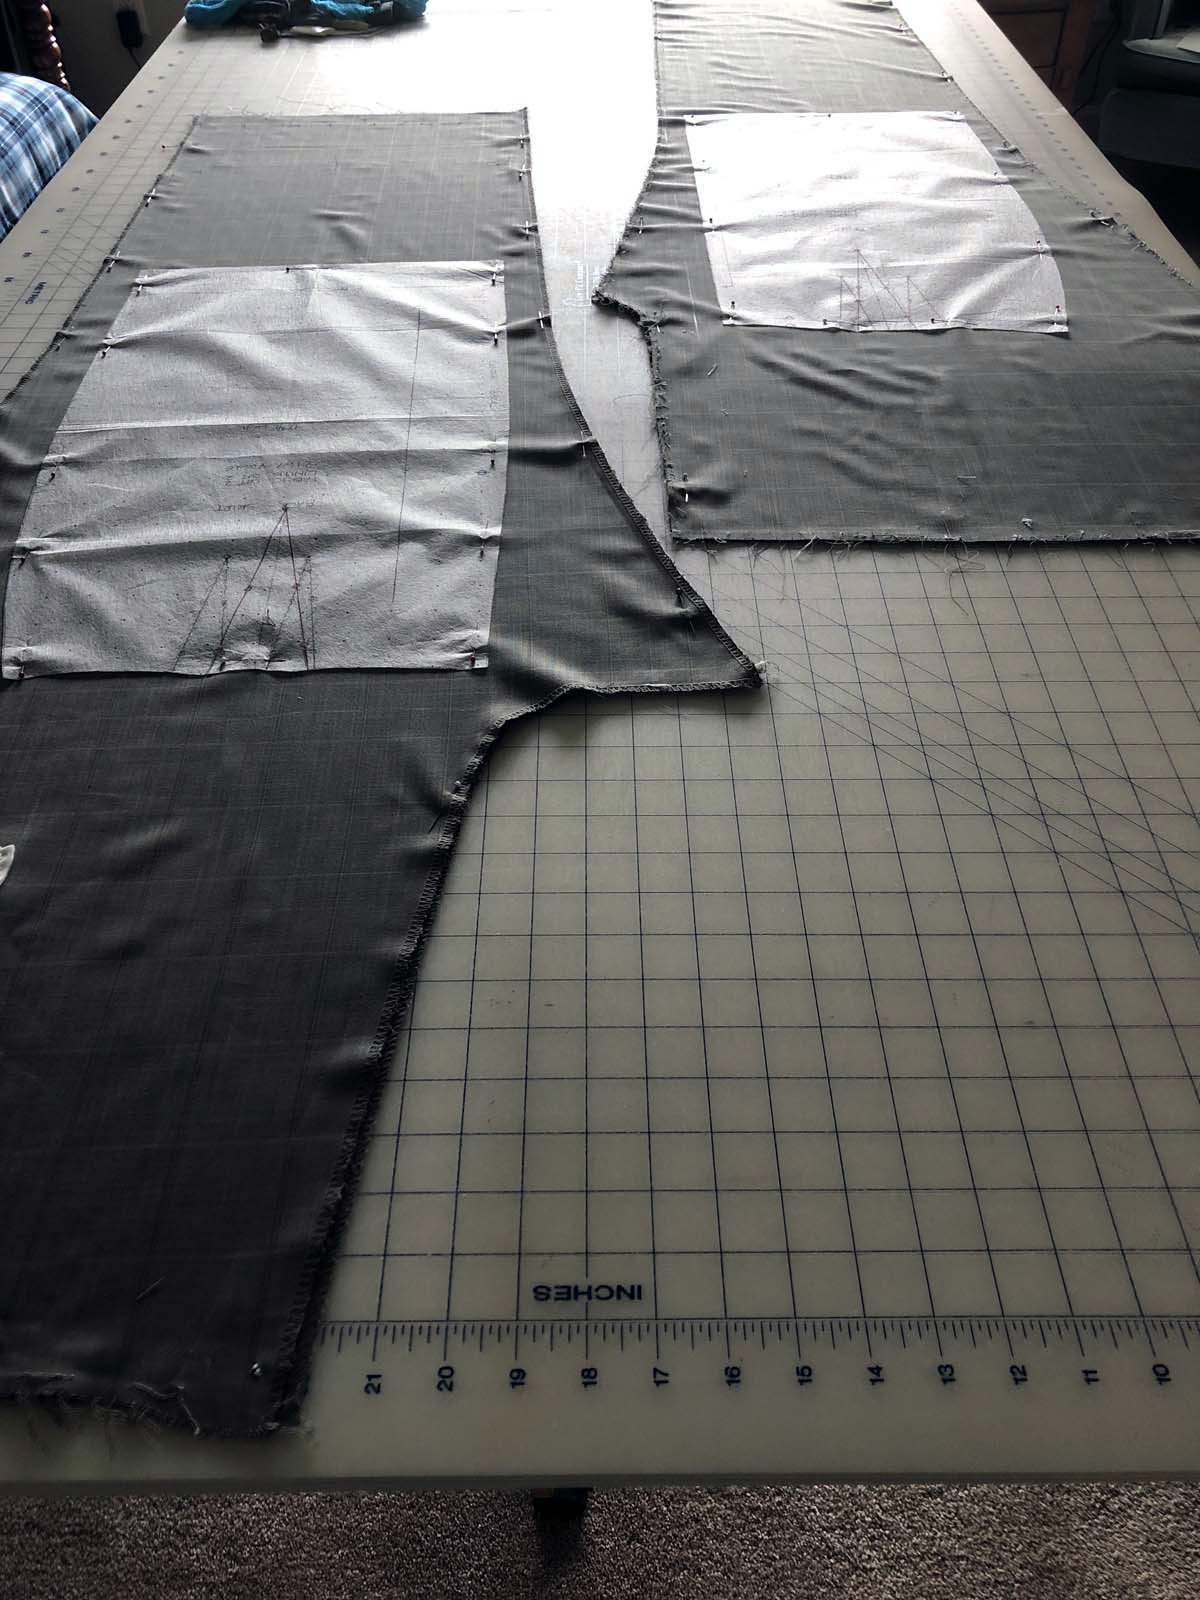 Deconstructed men's suit pant legs laid out with skirt patterns pinned on top